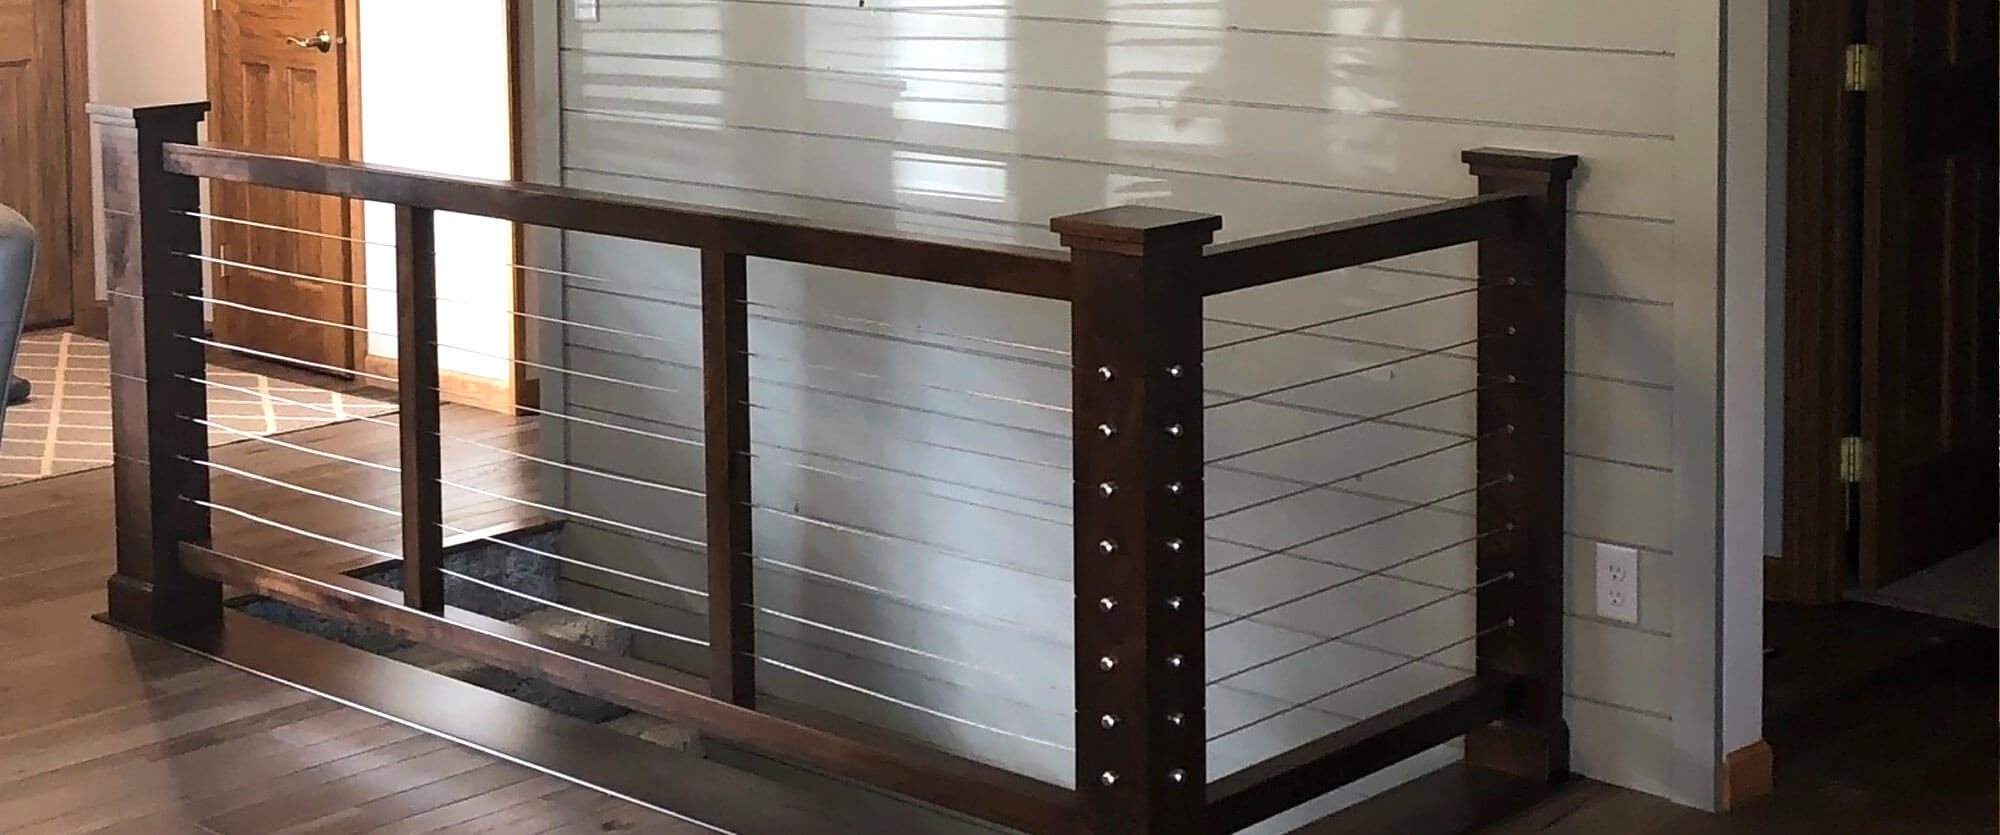 Custom stair hand rail made of solid Alder wood with a ship lap wall behind; designed, built, and installed by finewood Structures of Browerville, MN